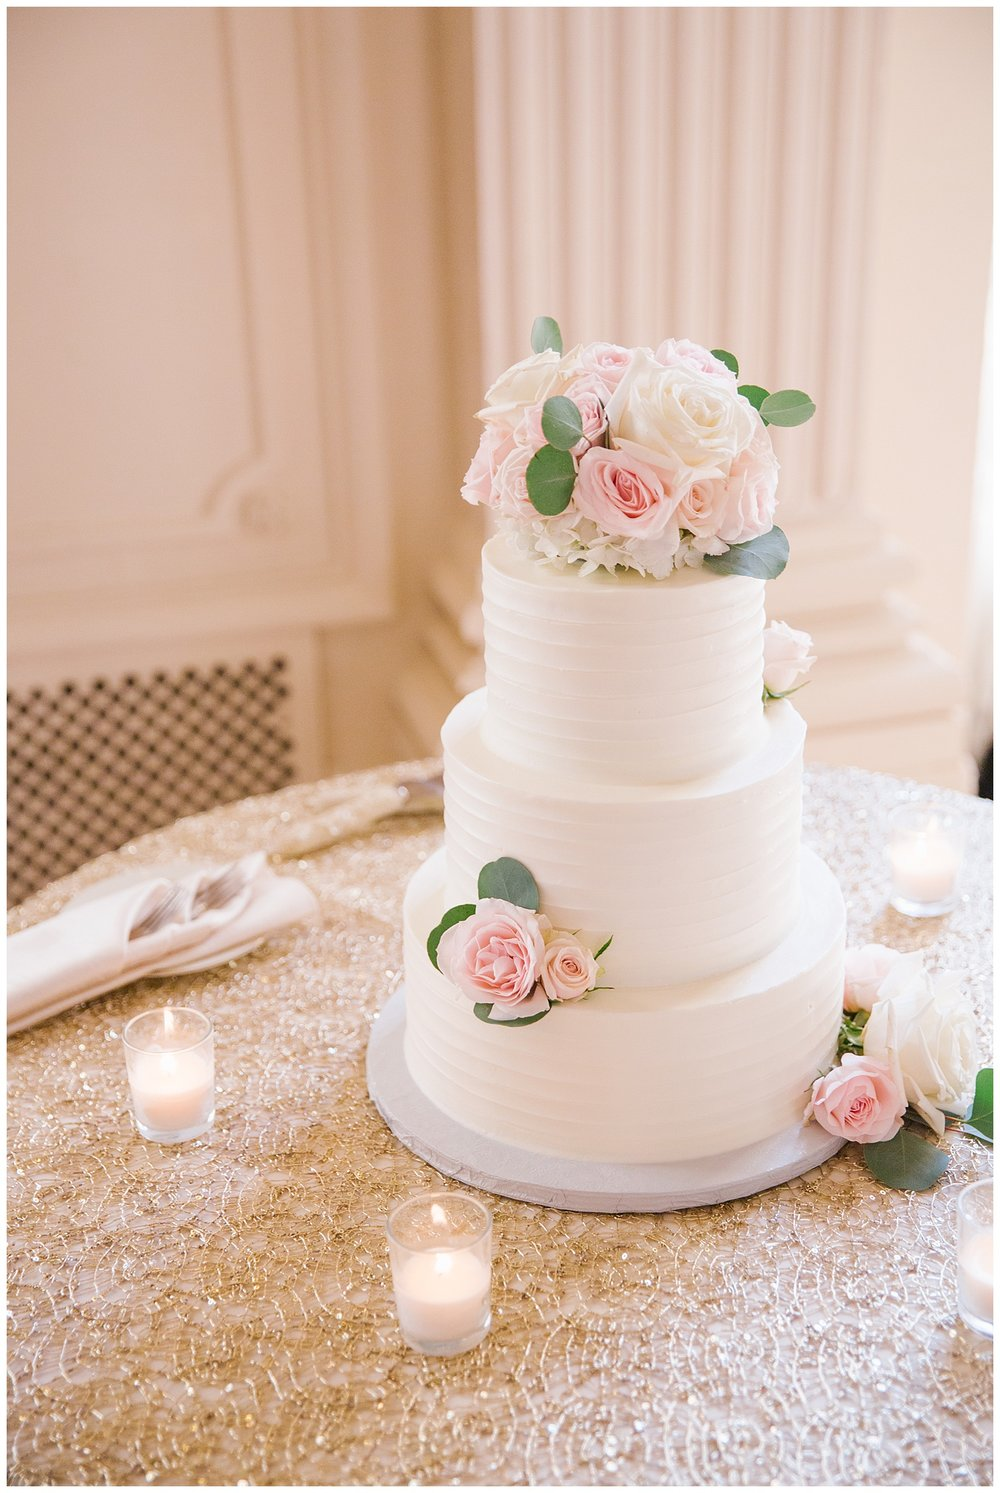 Stephen_Nathalie_Rosecliff_Mansion_Wedding_017.jpeg